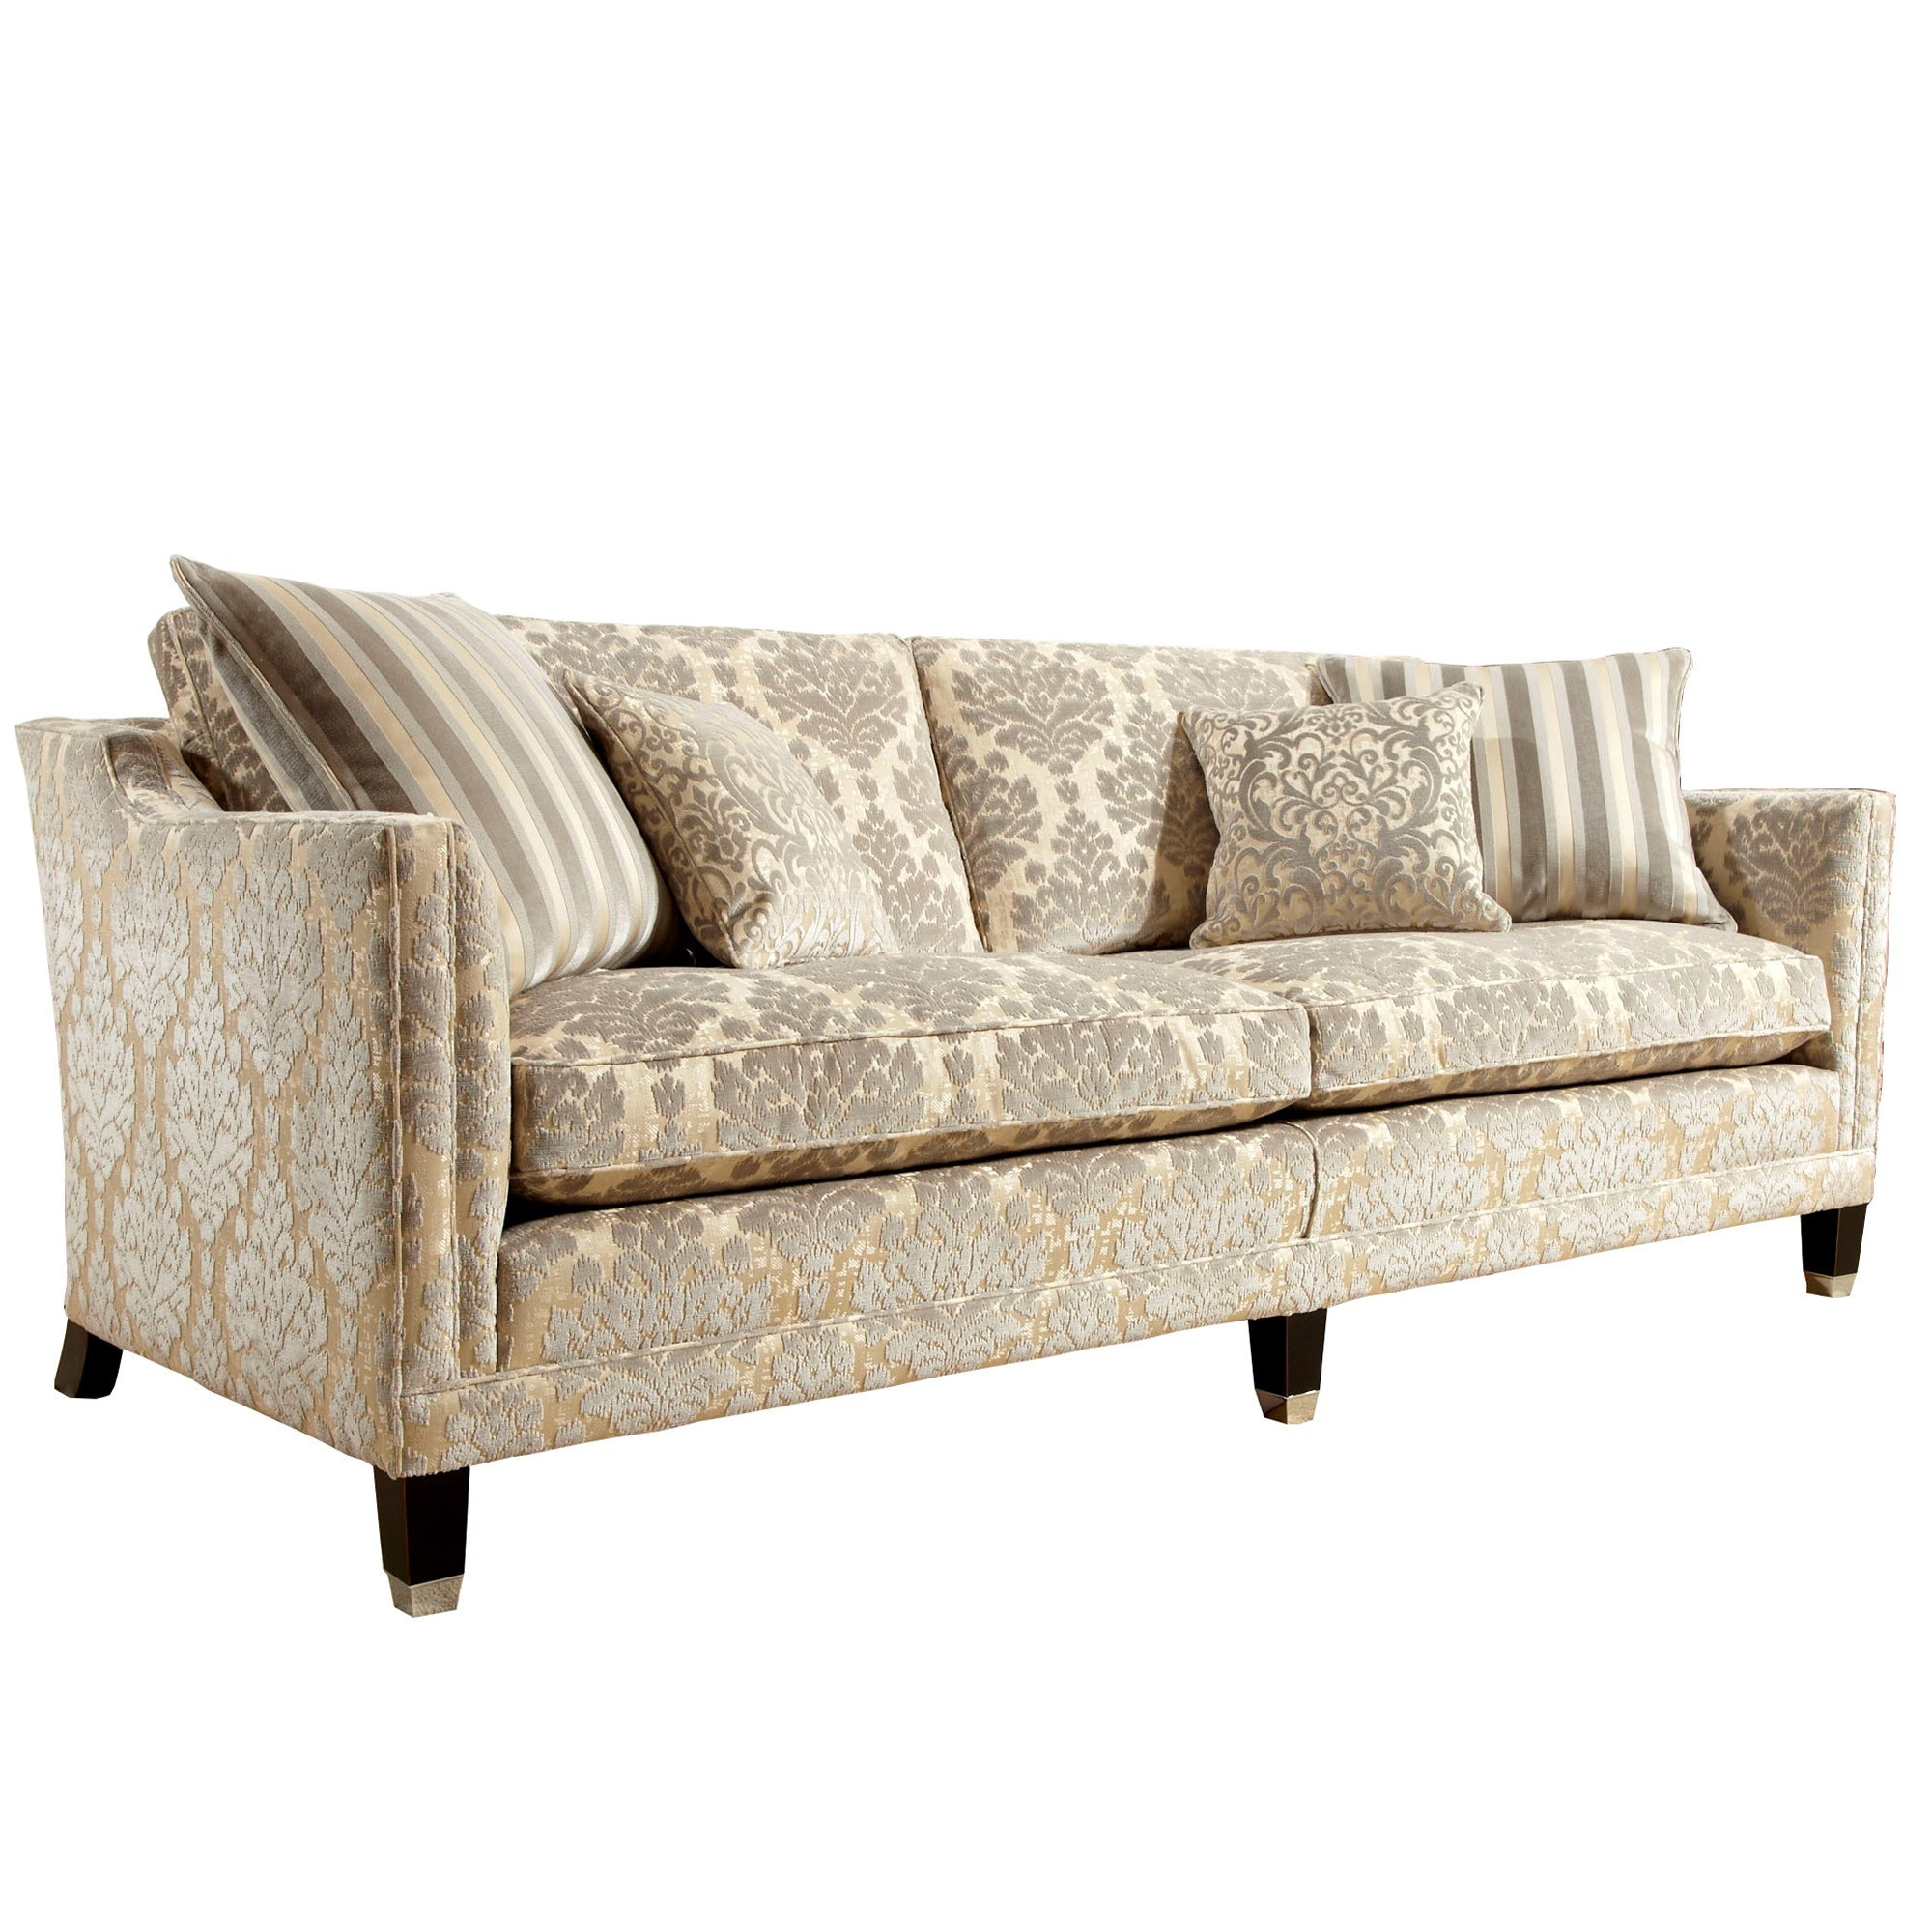 Duresta Collingwood 3 Seater Sofa Duresta Cookes Furniture